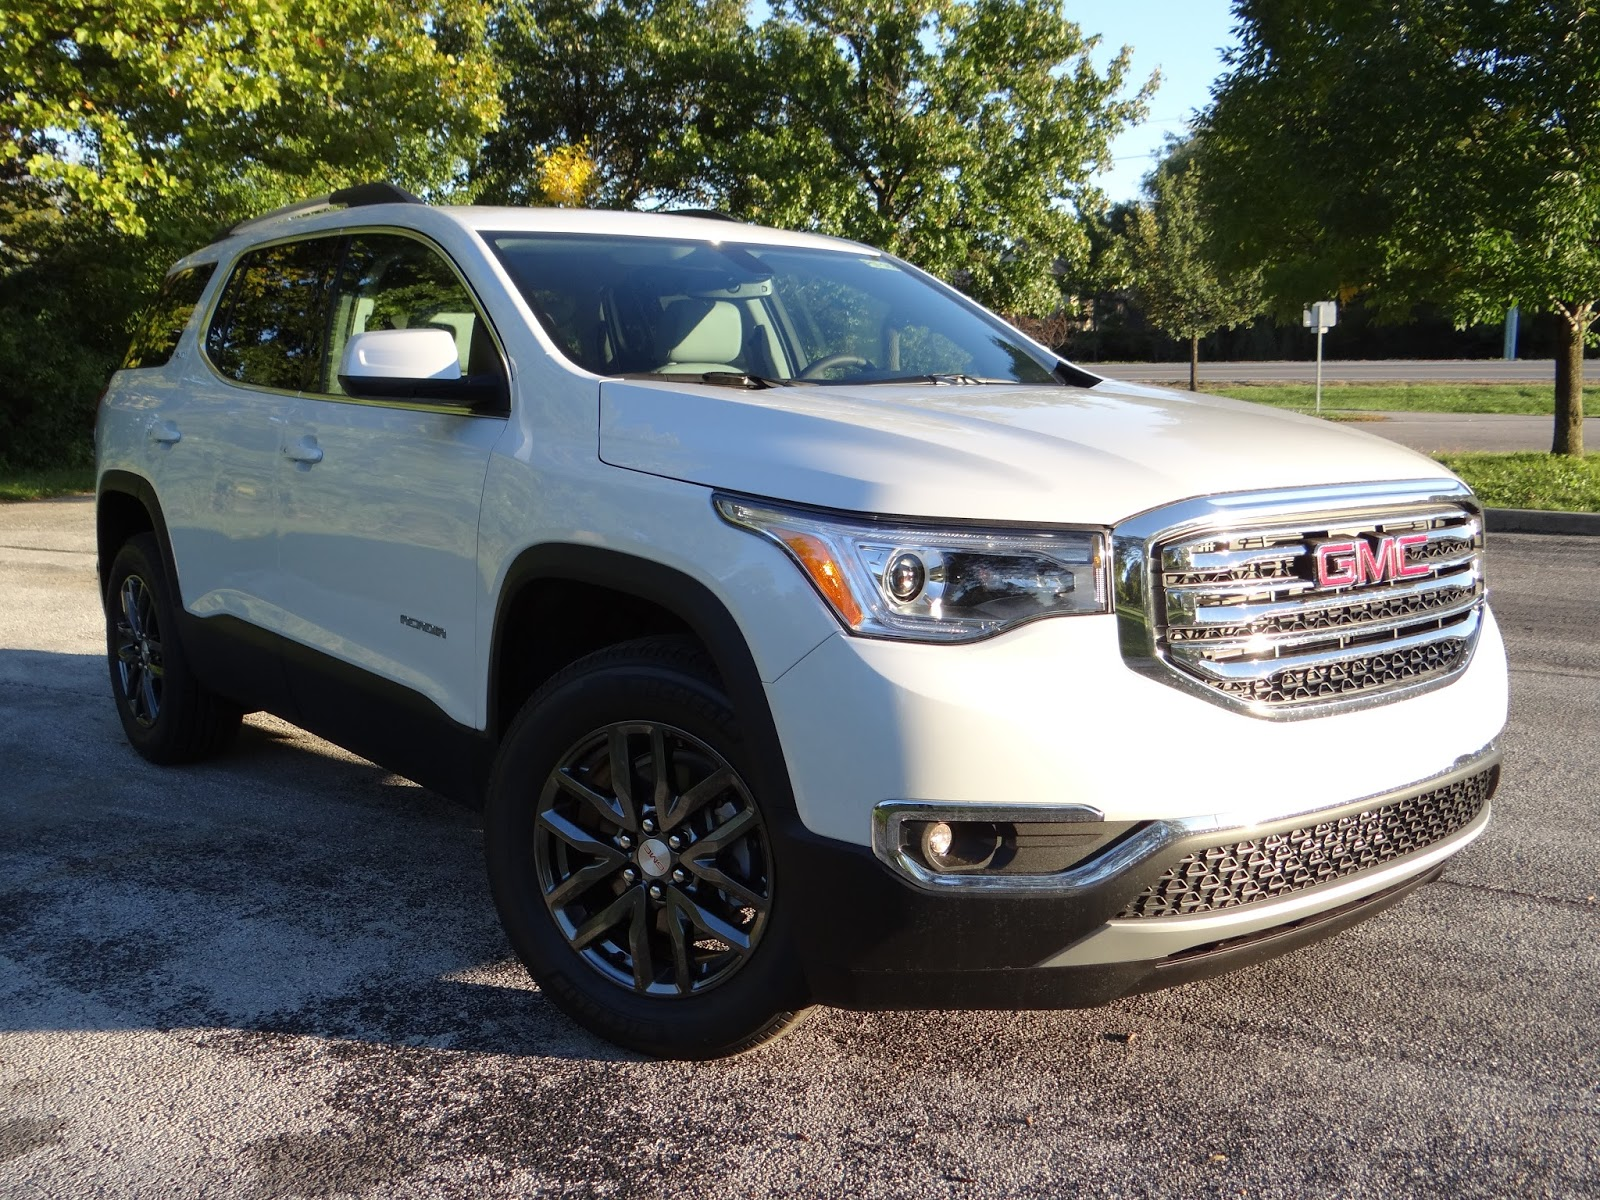 Some will no doubt question why gmc felt the need to make the second generation acadia trimmer while not really confirmed it is largely believed that